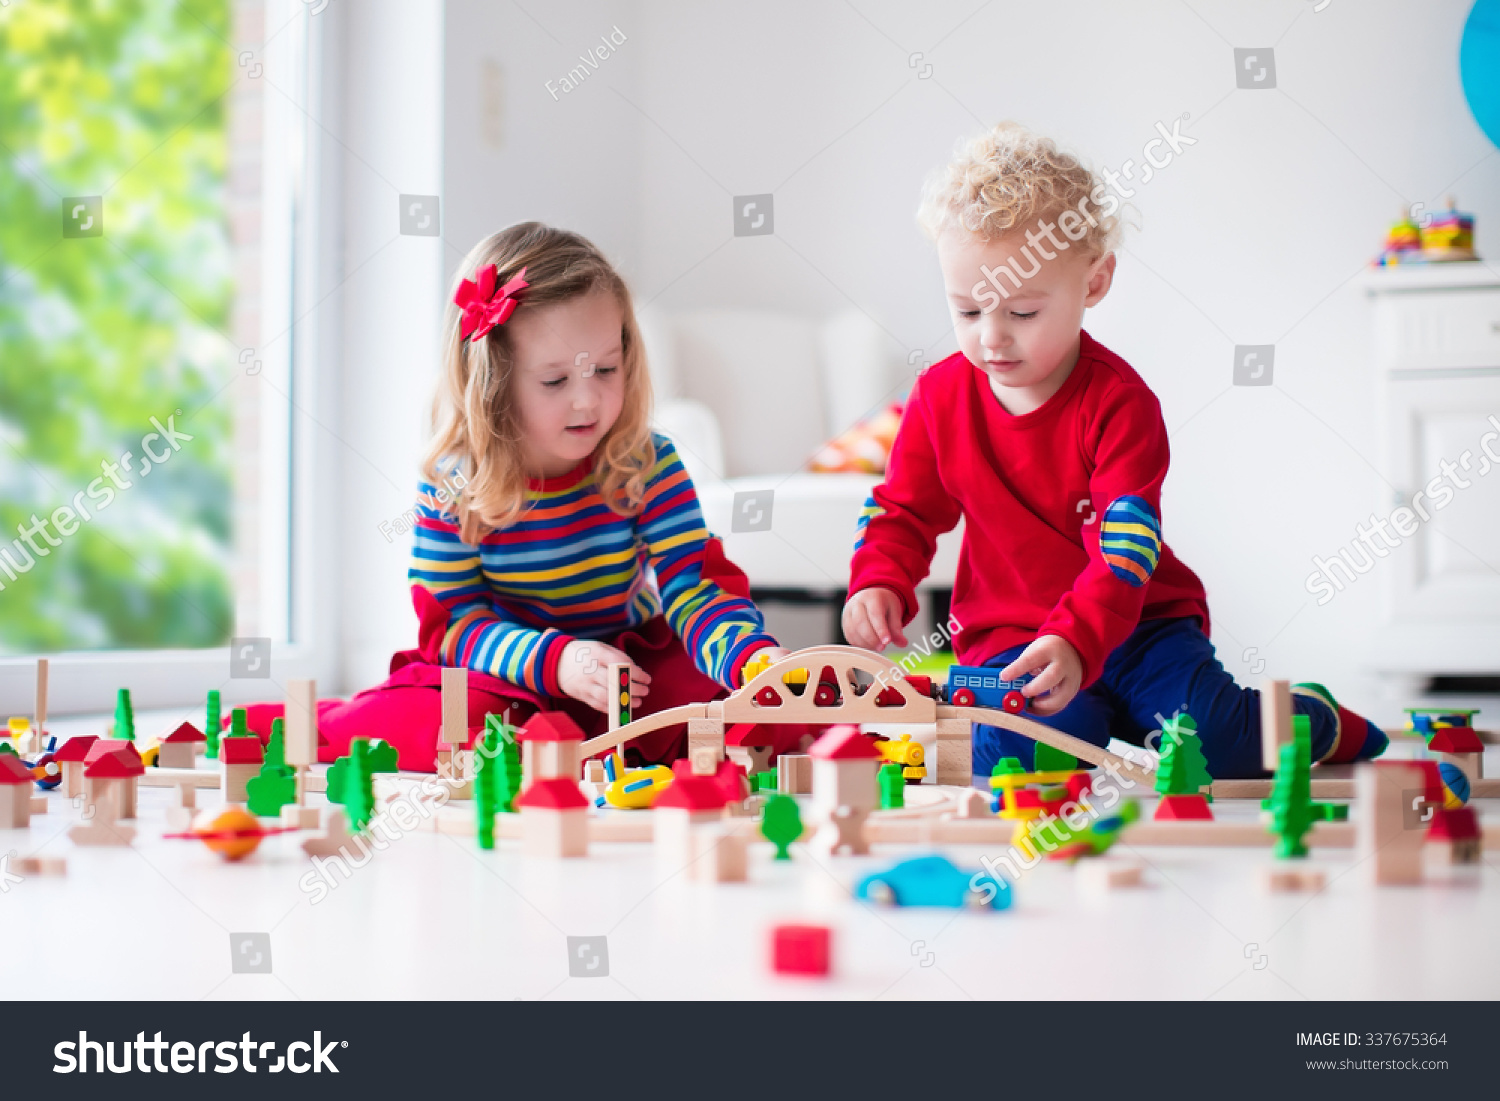 Children Playing With Wooden Train Toddler Kid And Baby